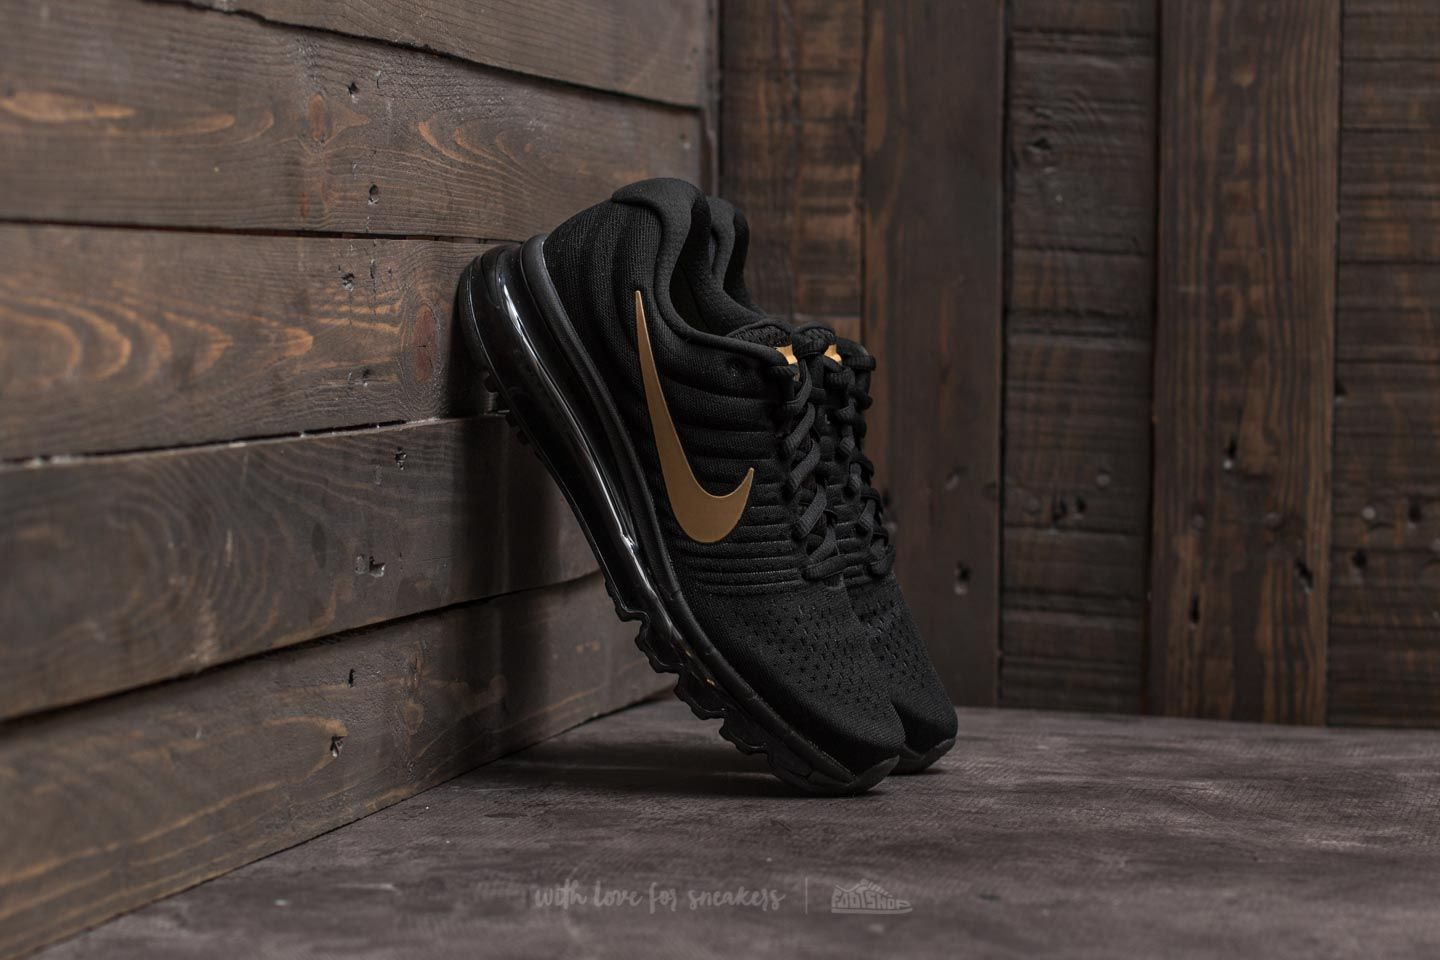 newest collection 64c4e 8cf05 Nike Air Max 2017 (GS) Black/ Metallic Gold | Footshop